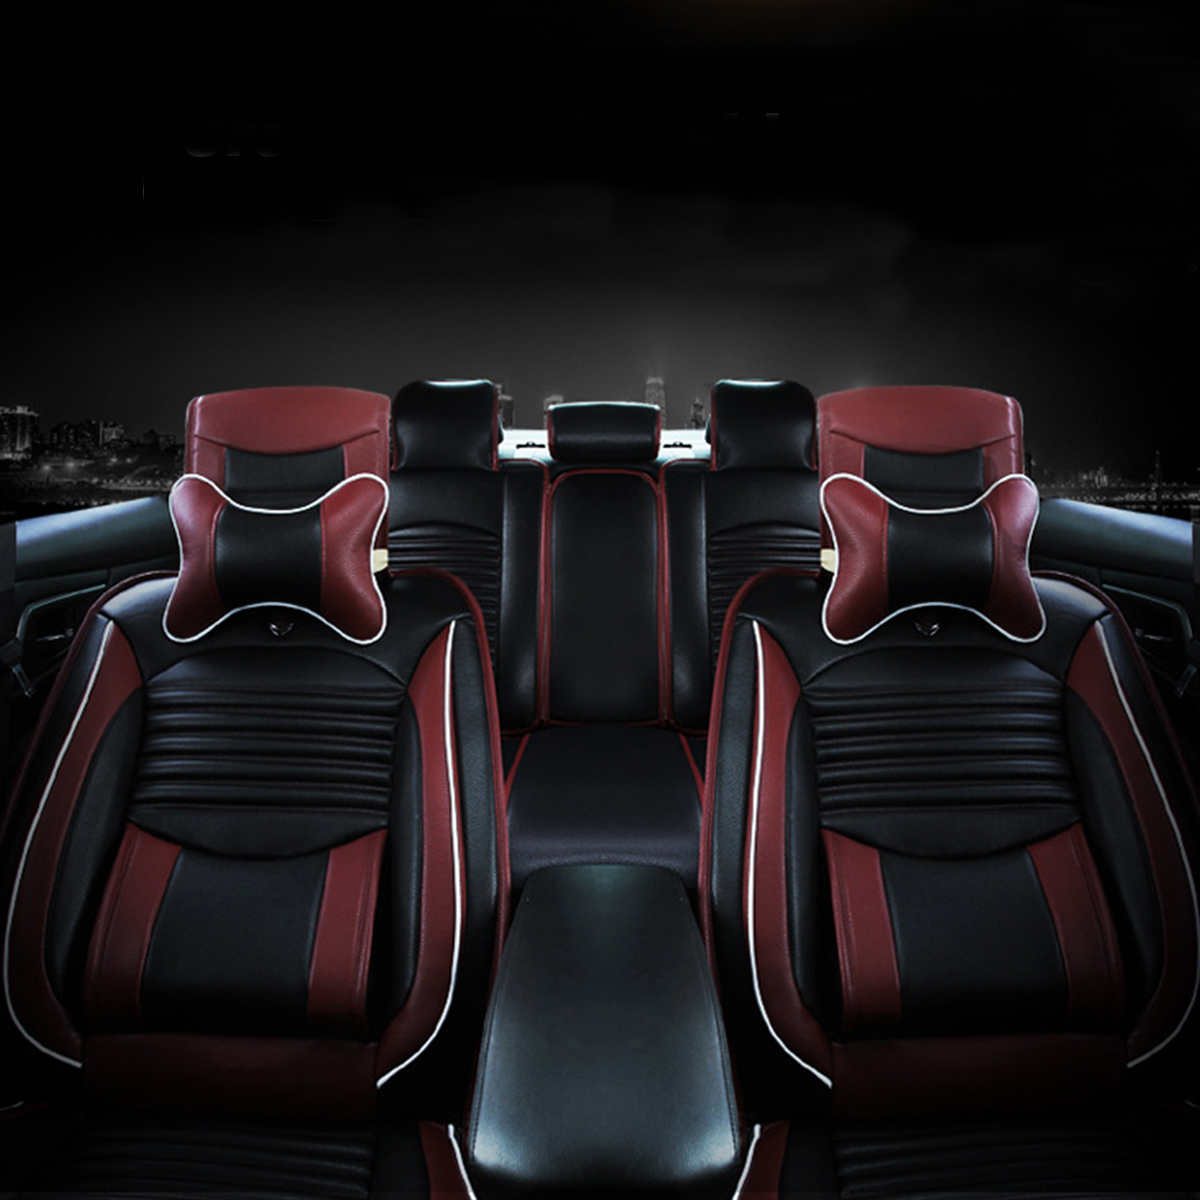 Black Pu Leather Full Surround Car Seat Cover Cushion Front Rear Set Fit For 5 Seat Car